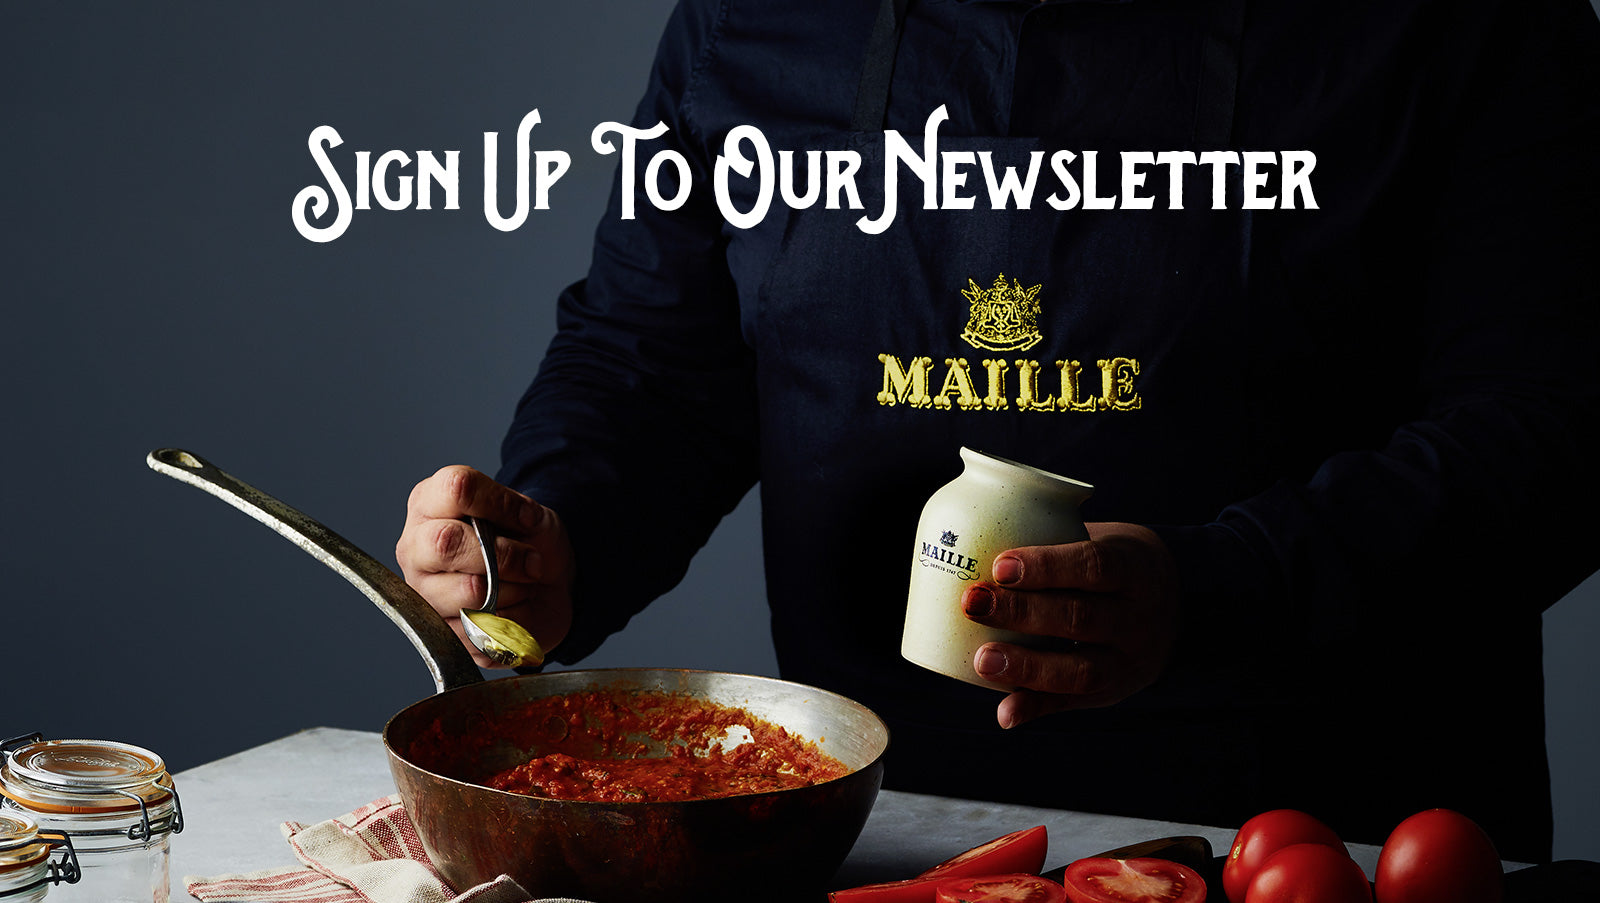 Maille, mustard, welcome, hampton court, explore, flavour